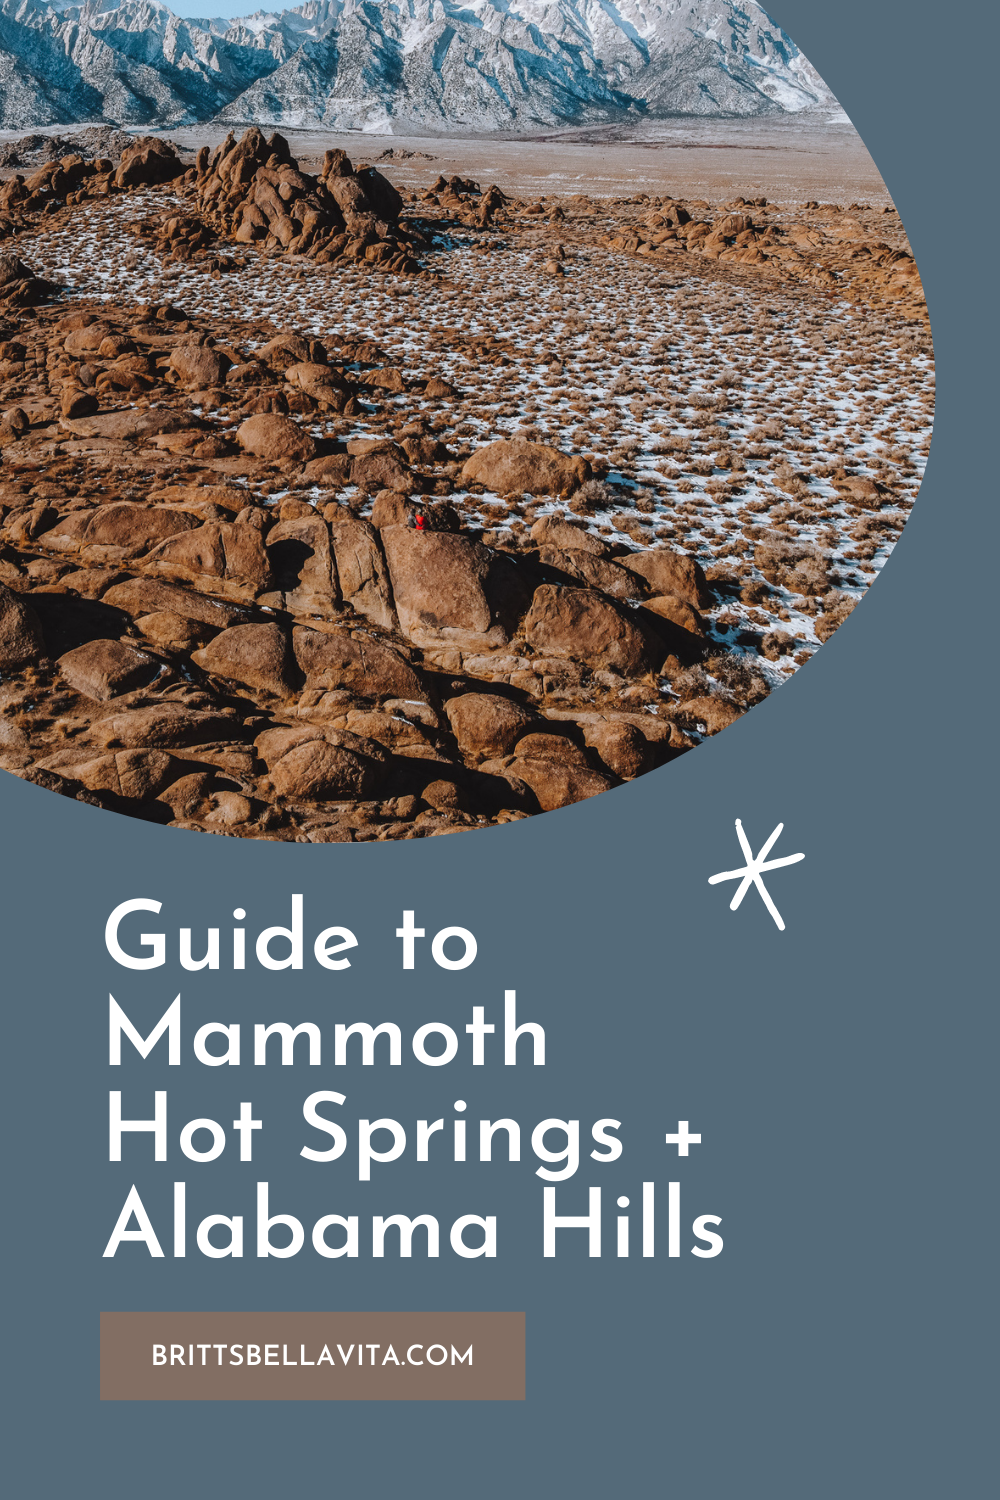 Guide to Mammoth Hot Springs and Alabama Hills Dispersed Camping